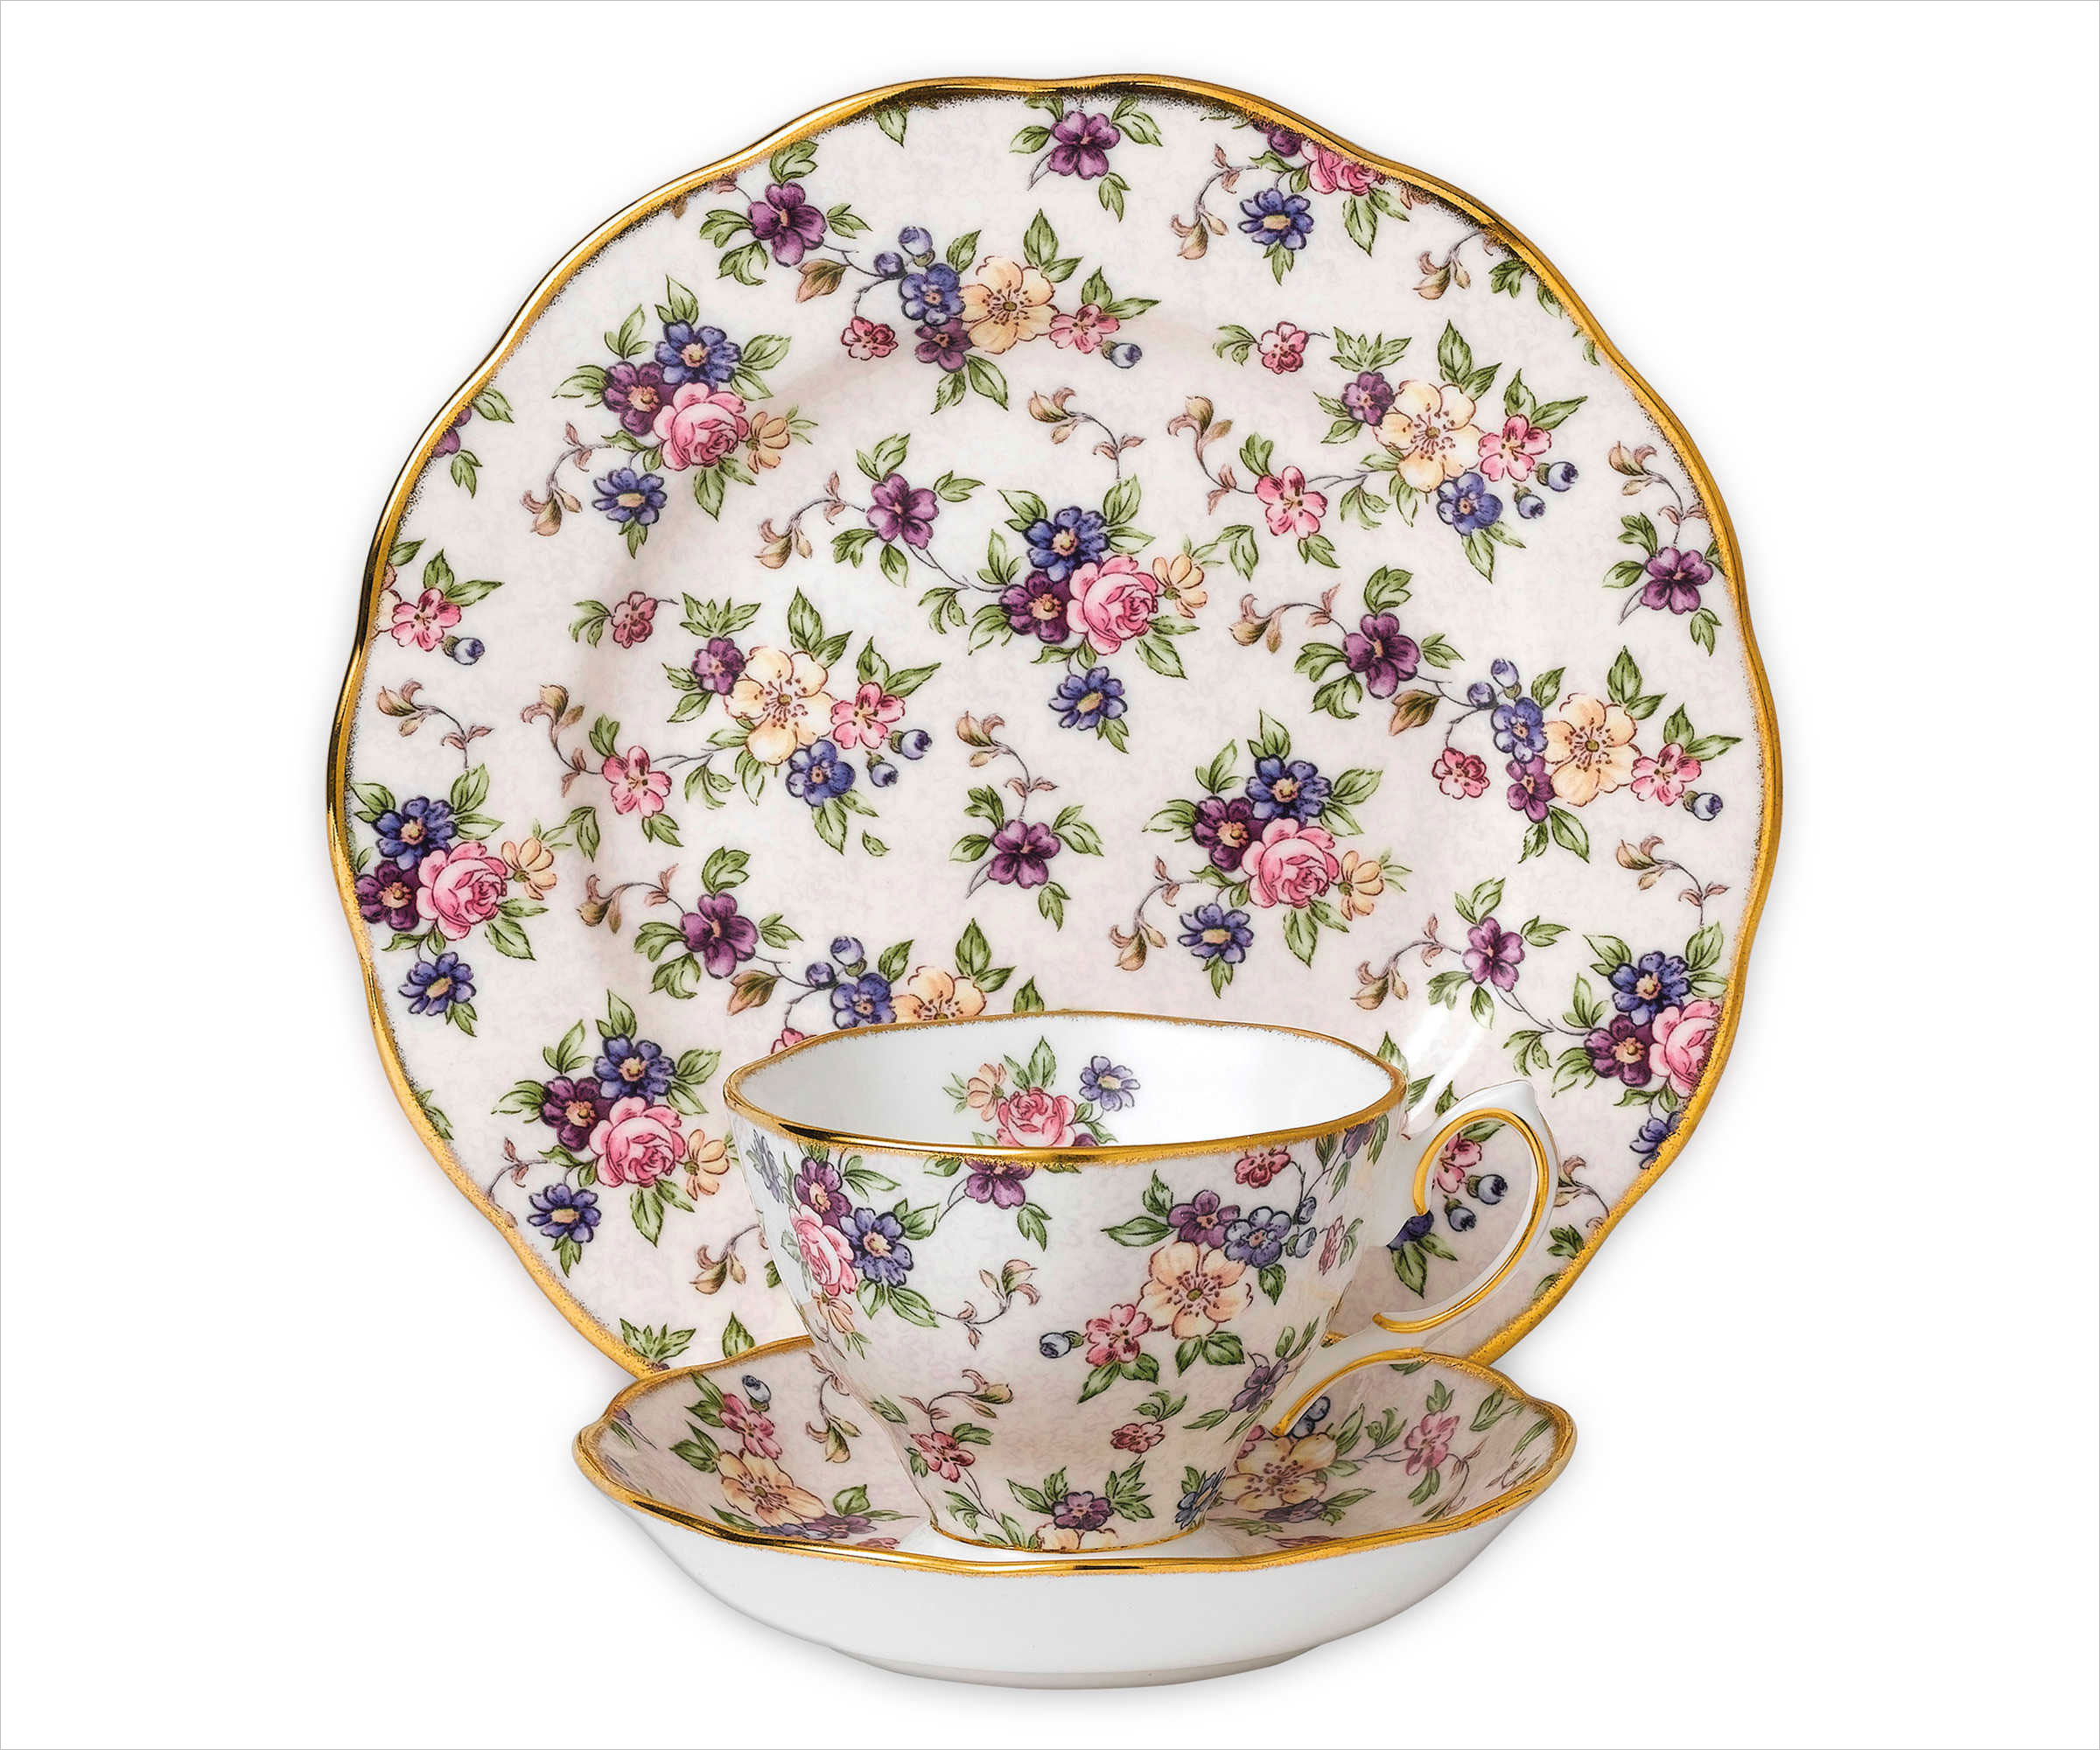 royal albert 1940 english chintz china place setting bed bath and beyond registry ideas